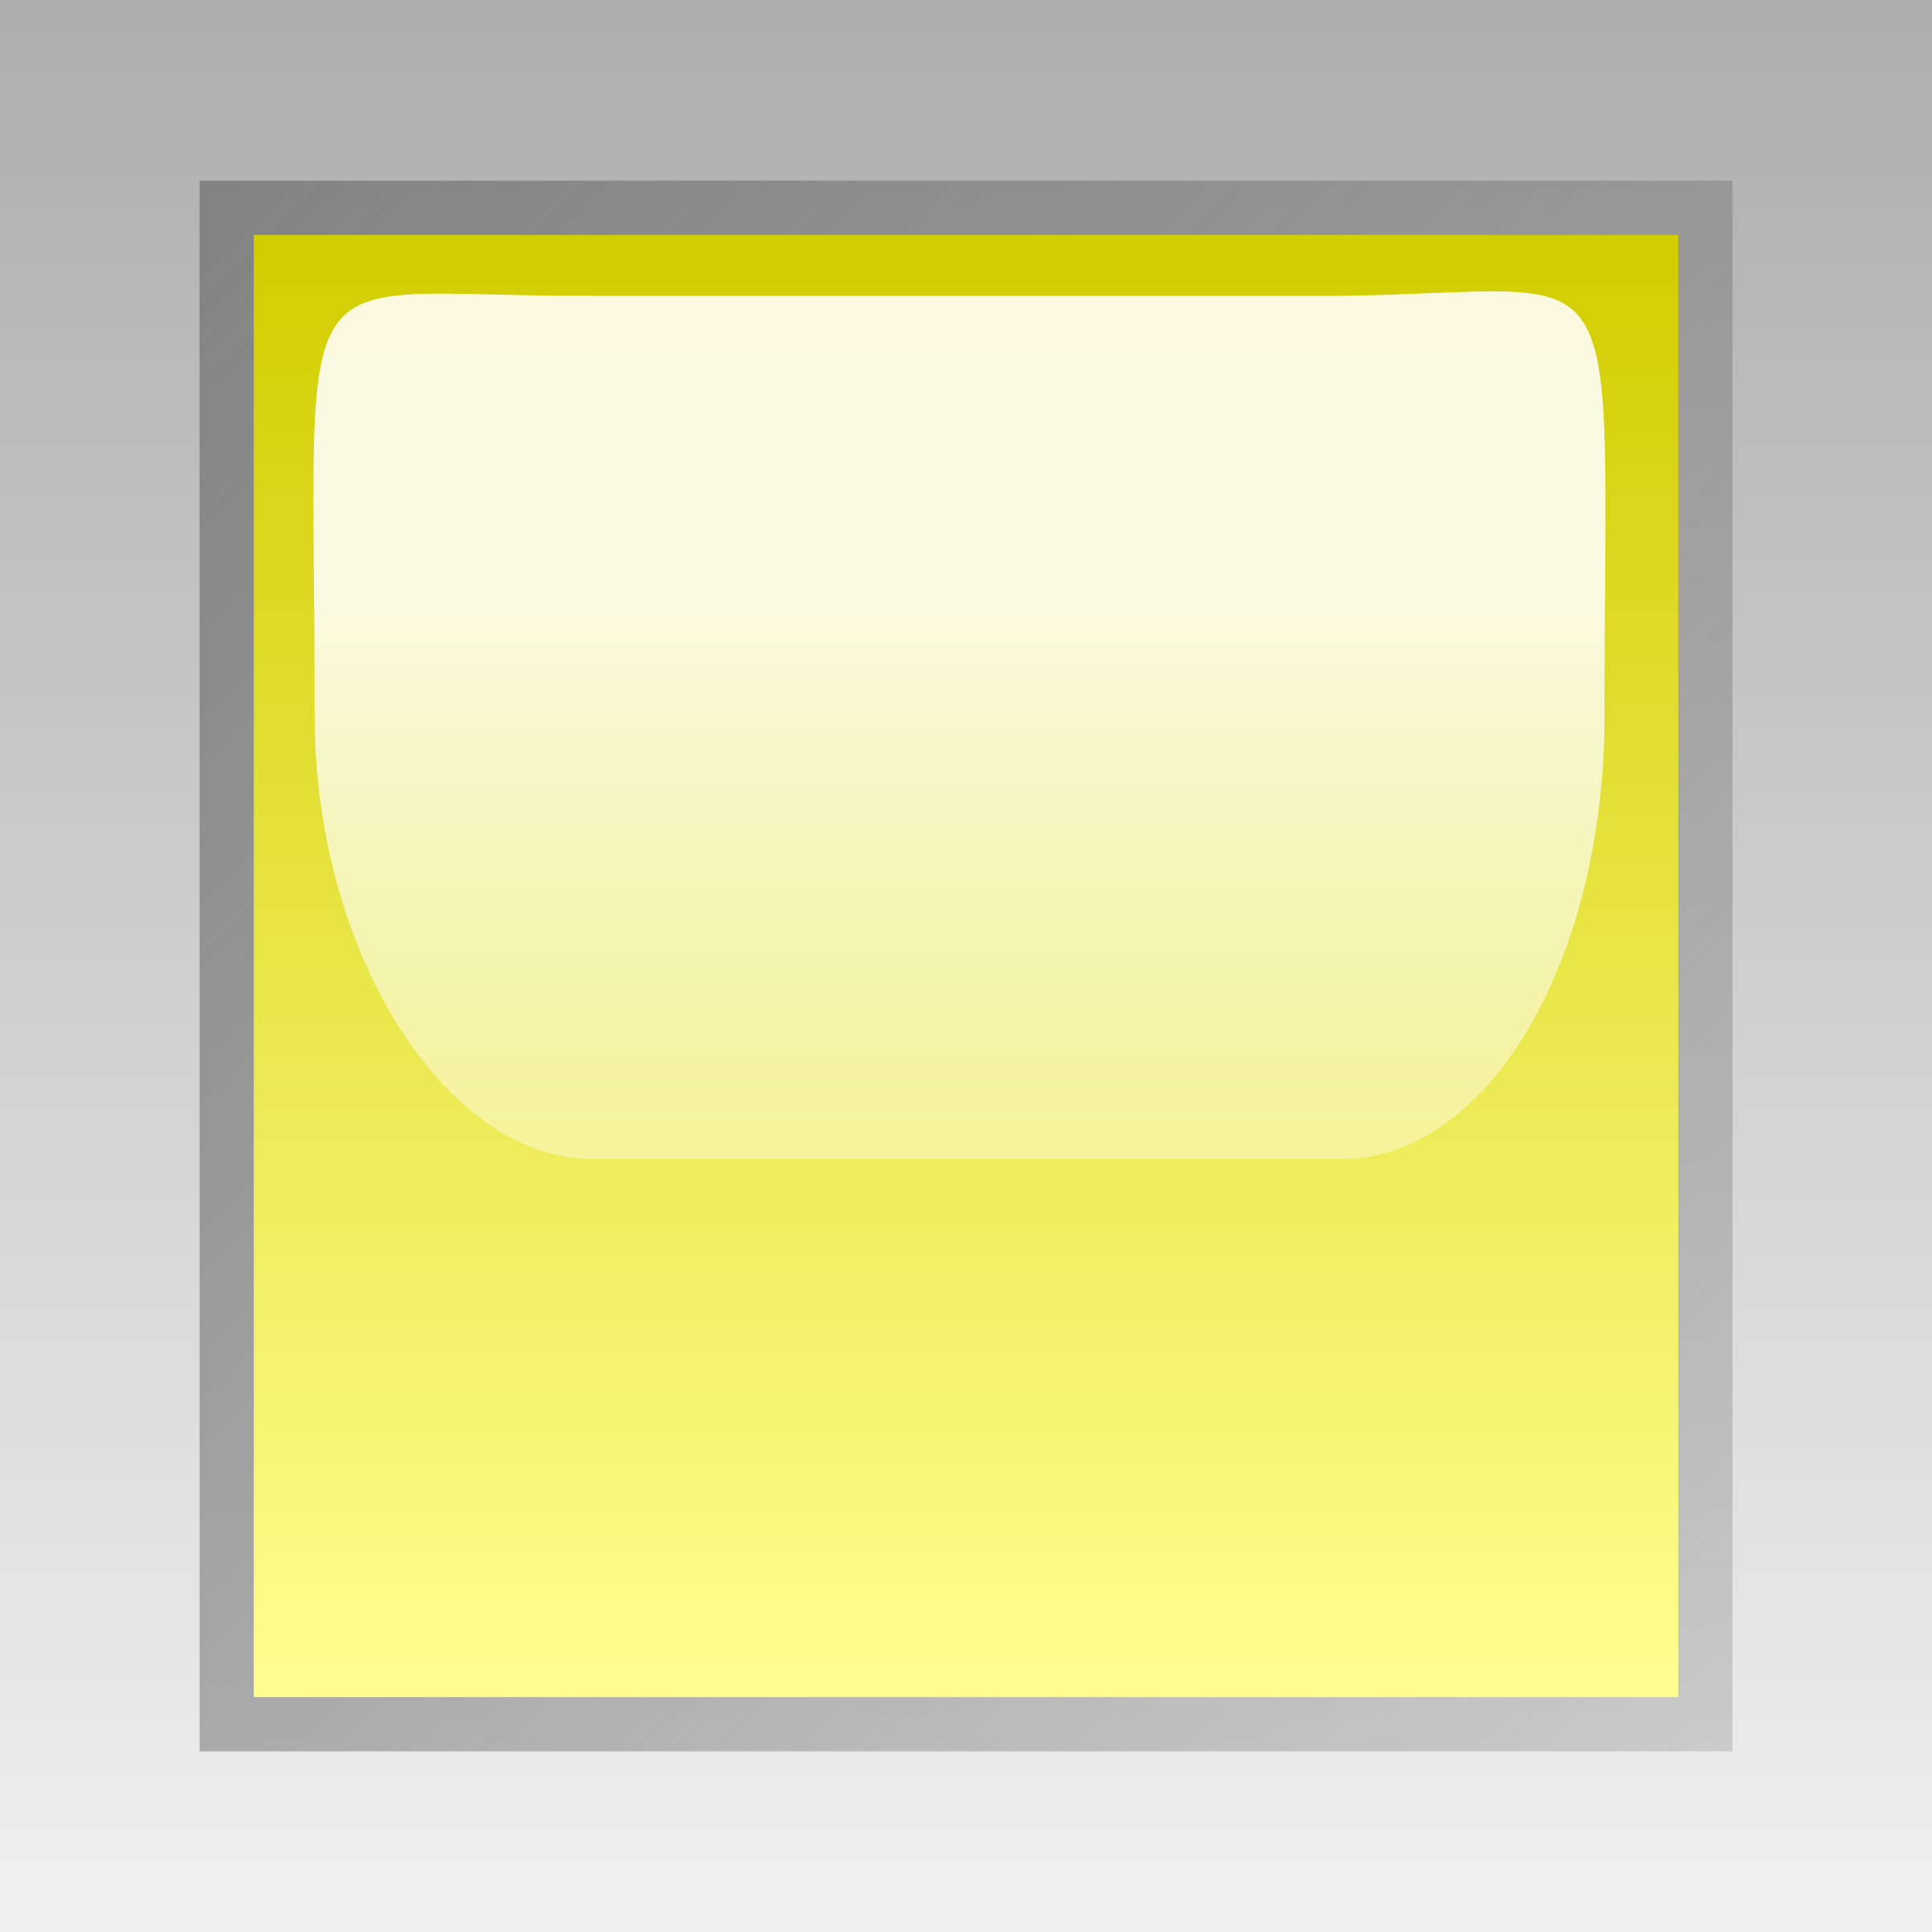 Led Square Yellow By Jean Victor Balin